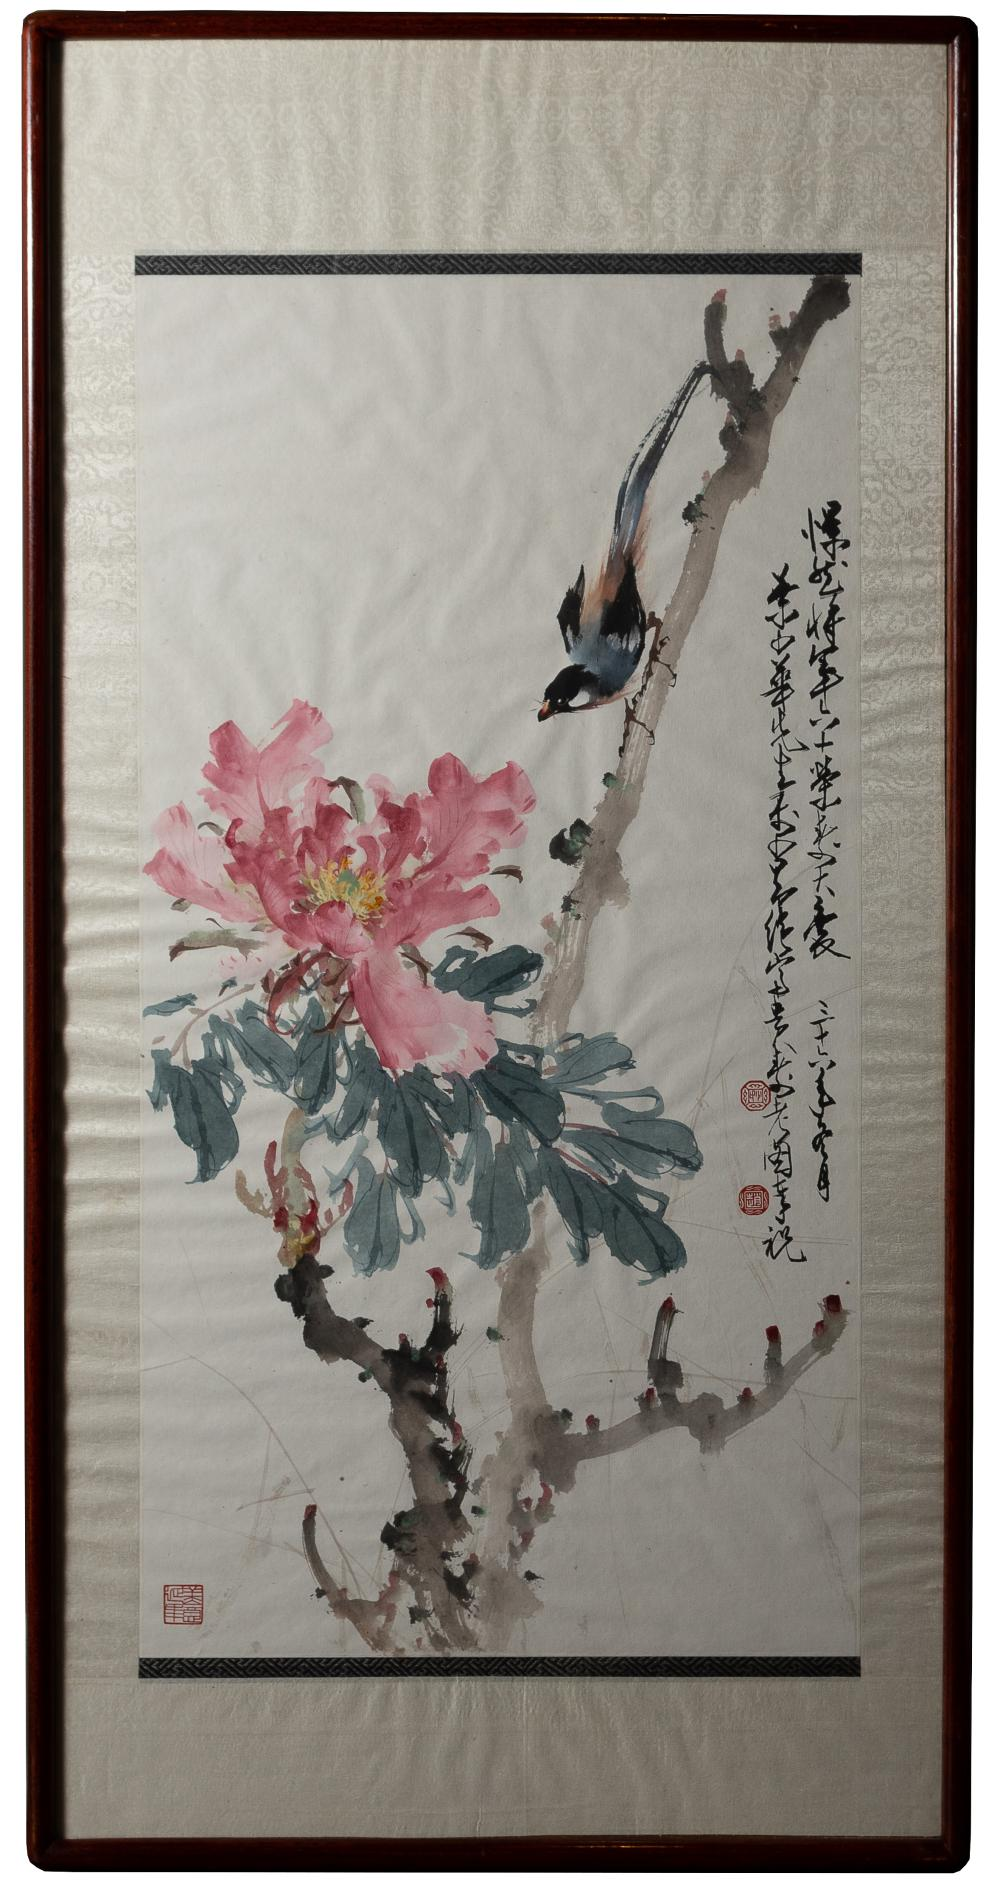 CHINESE PAINTING OF FLOWER & BIRD, ZHAO SHAOANG